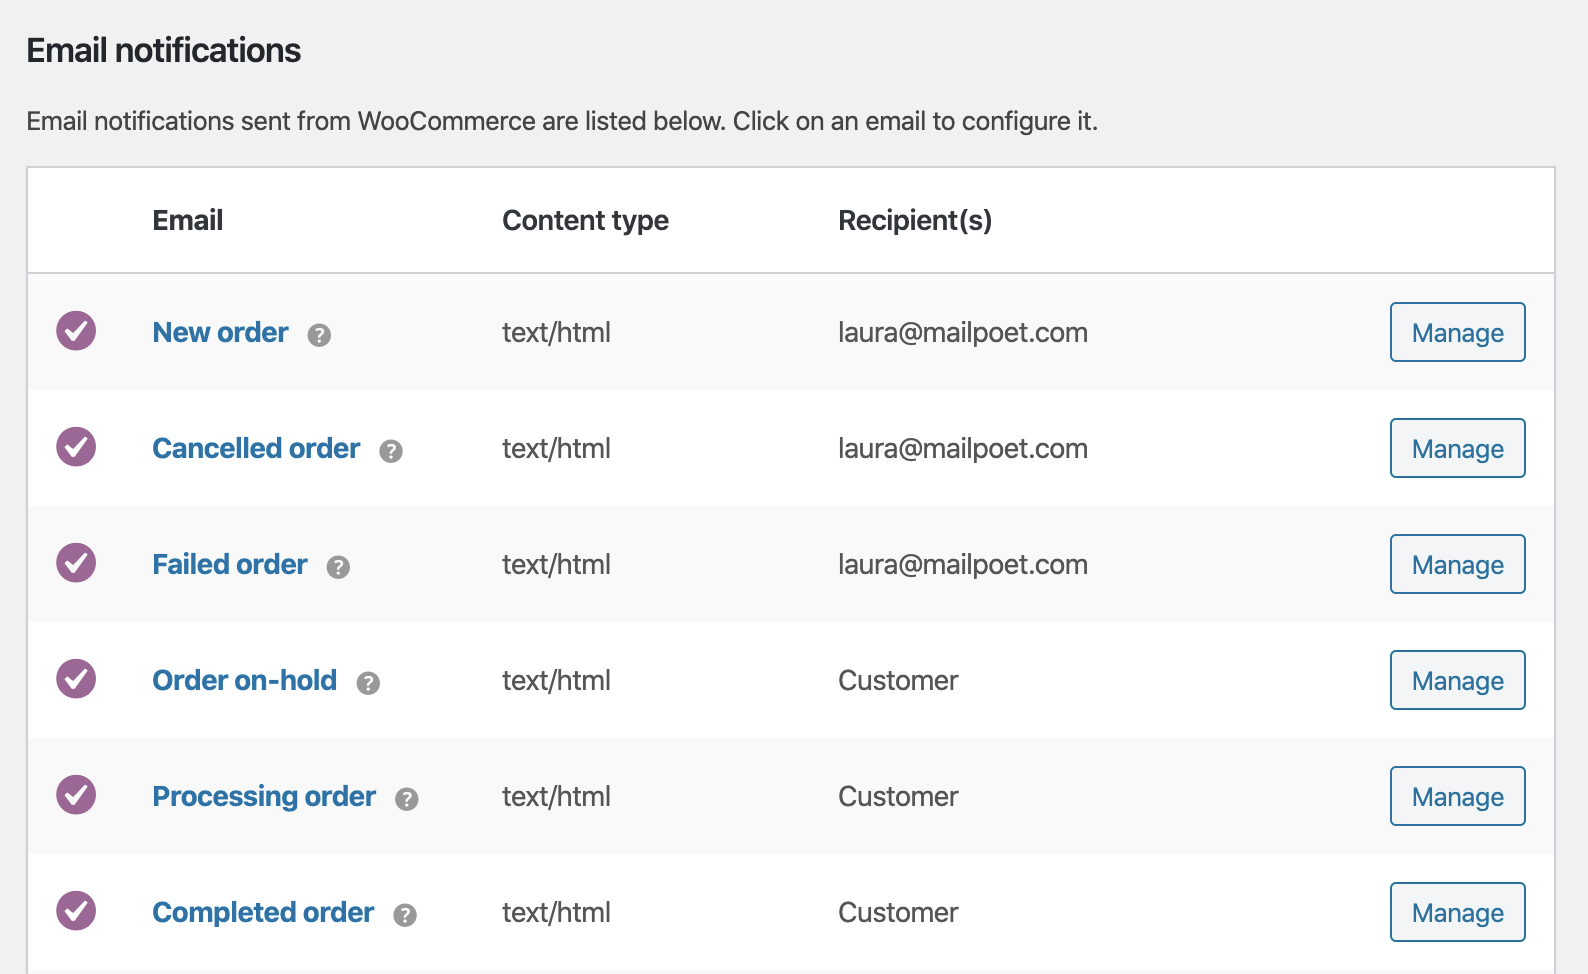 Screenshot of the WooCommerce email notifications screen